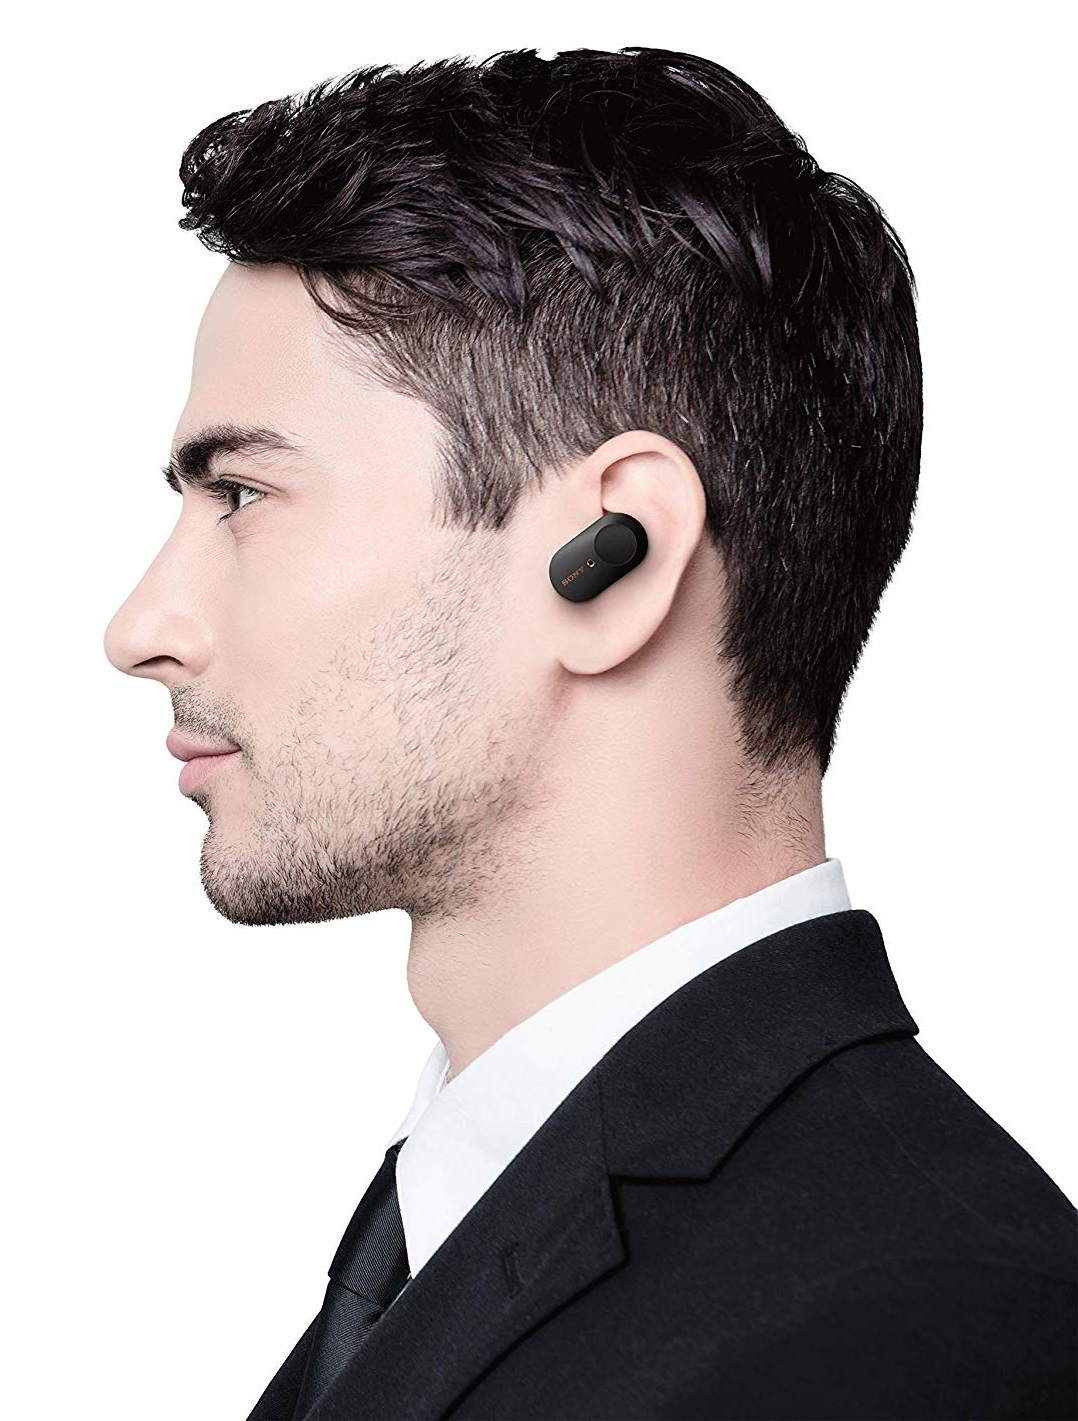 Sony WF-1000XM3 Industry Leading Noise Canceling Truly Wireless Earbuds - Black image